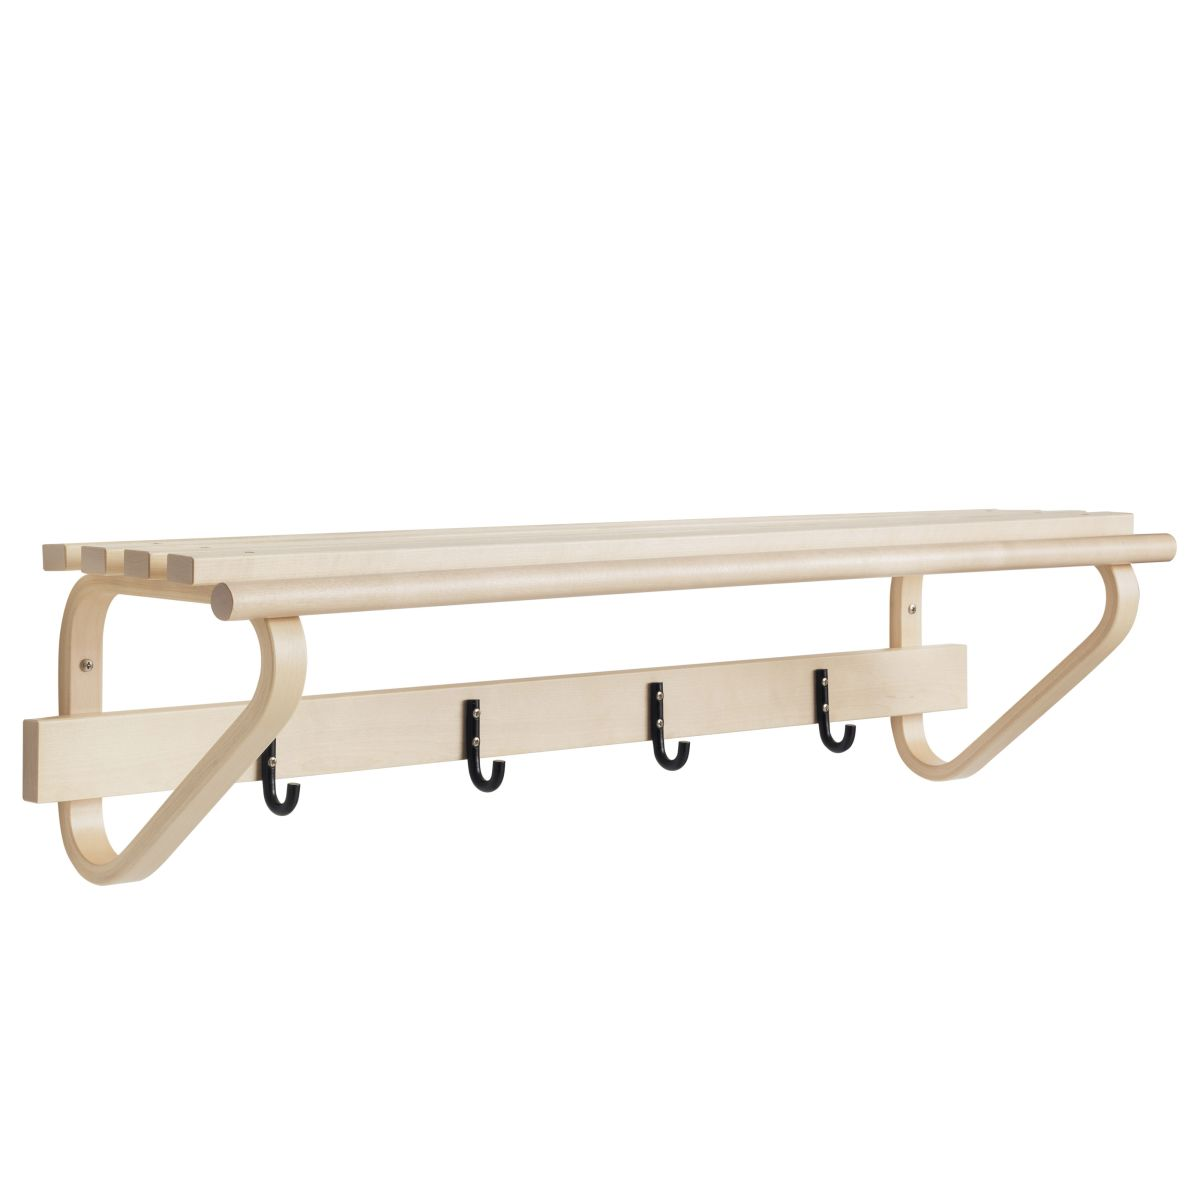 Coat-Rack-109C-Cut-Out_Web-1975926